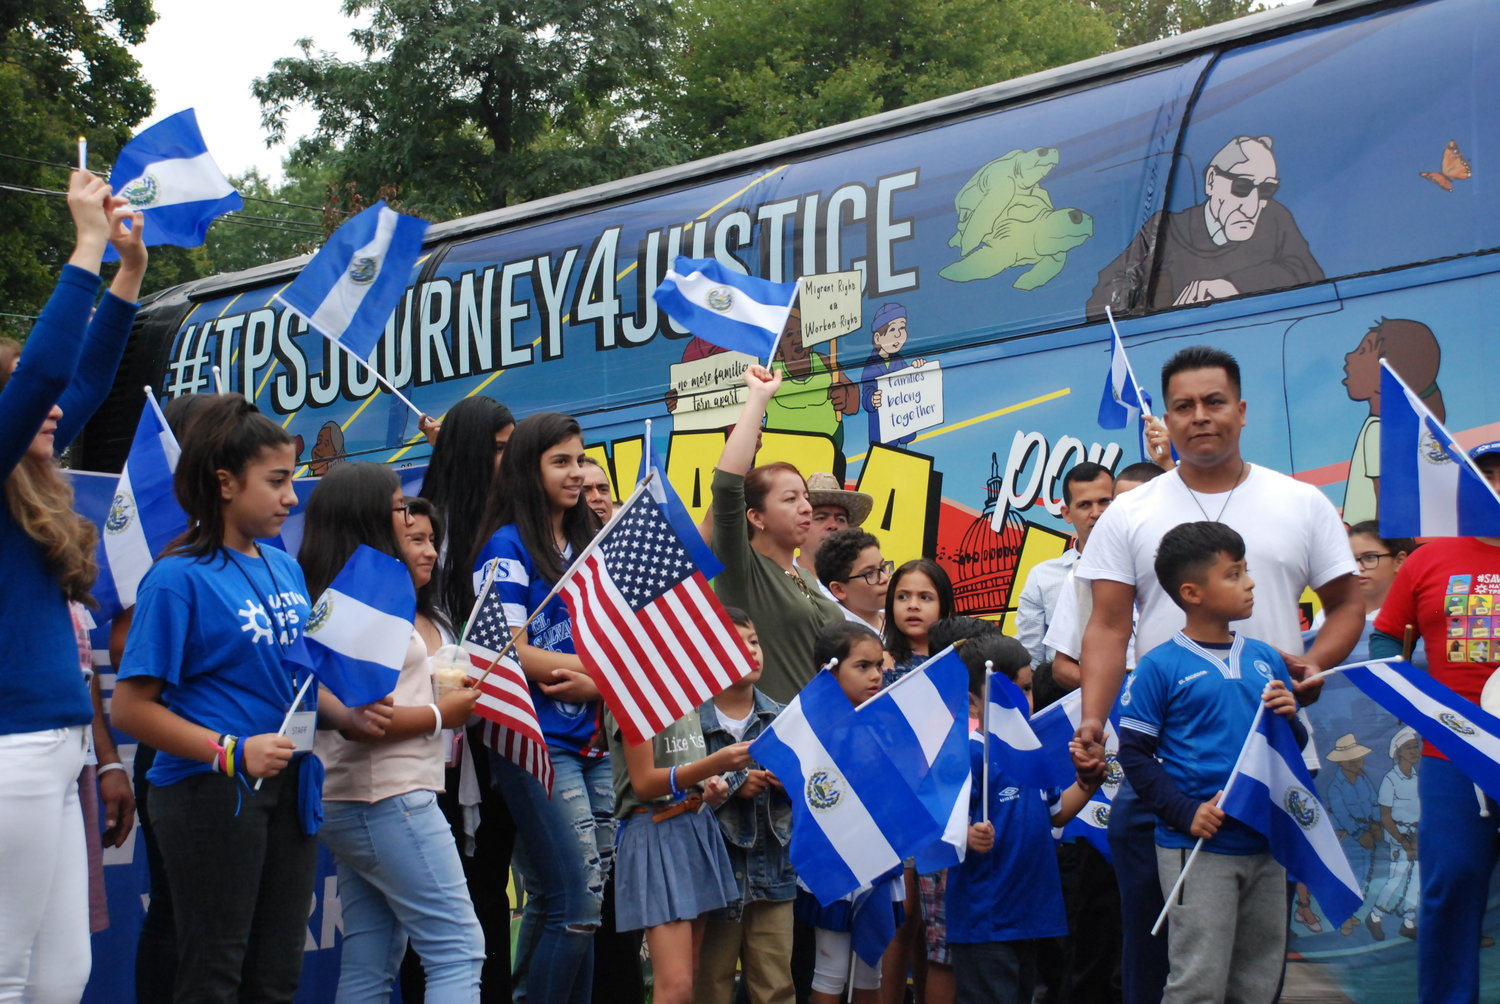 TPS recipients and their supporters came to the Glen Cove Knights of Columbus on Sunday to welcome the Journey for Justice bus, which was on week eight of its 12-week trip around the country.